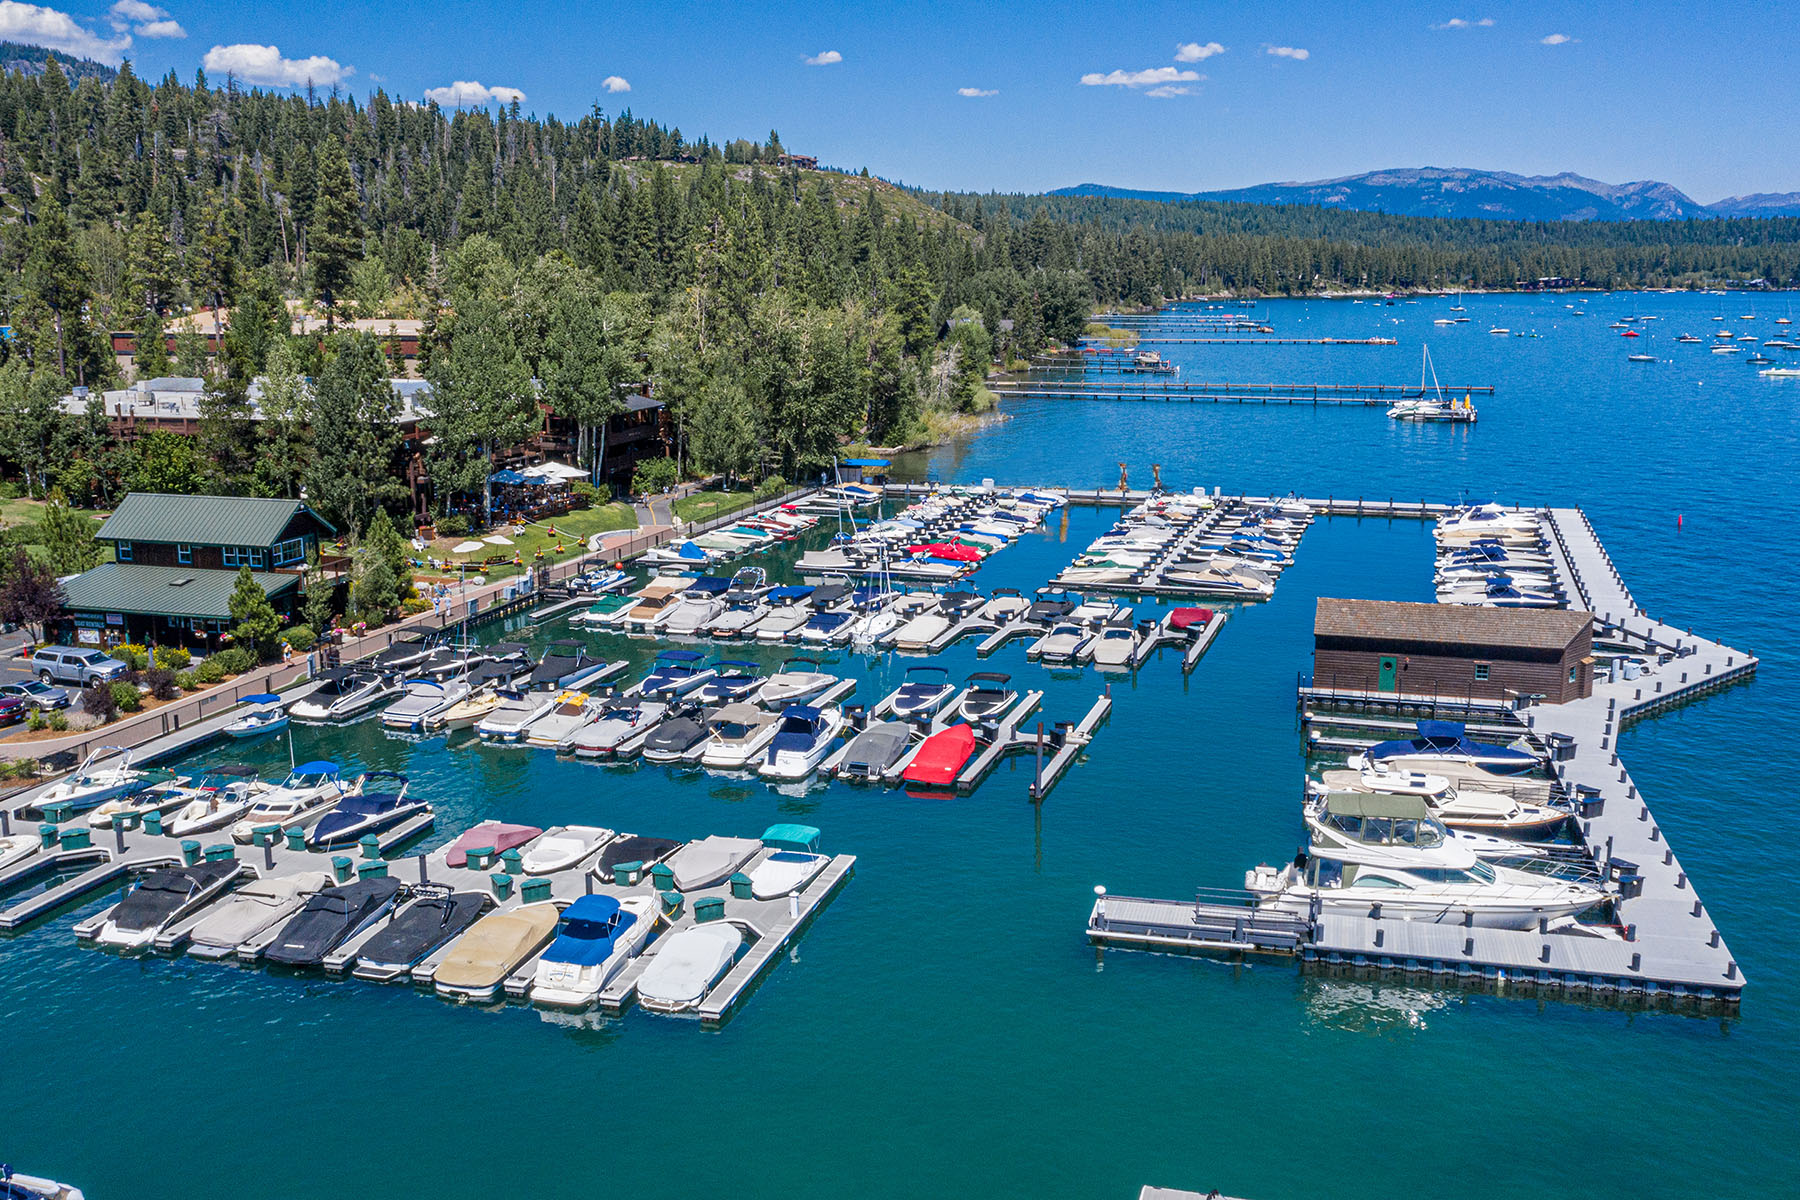 in 700 N. Lake Blvd. #F-25, Tahoe City, Kalifornien ,96145